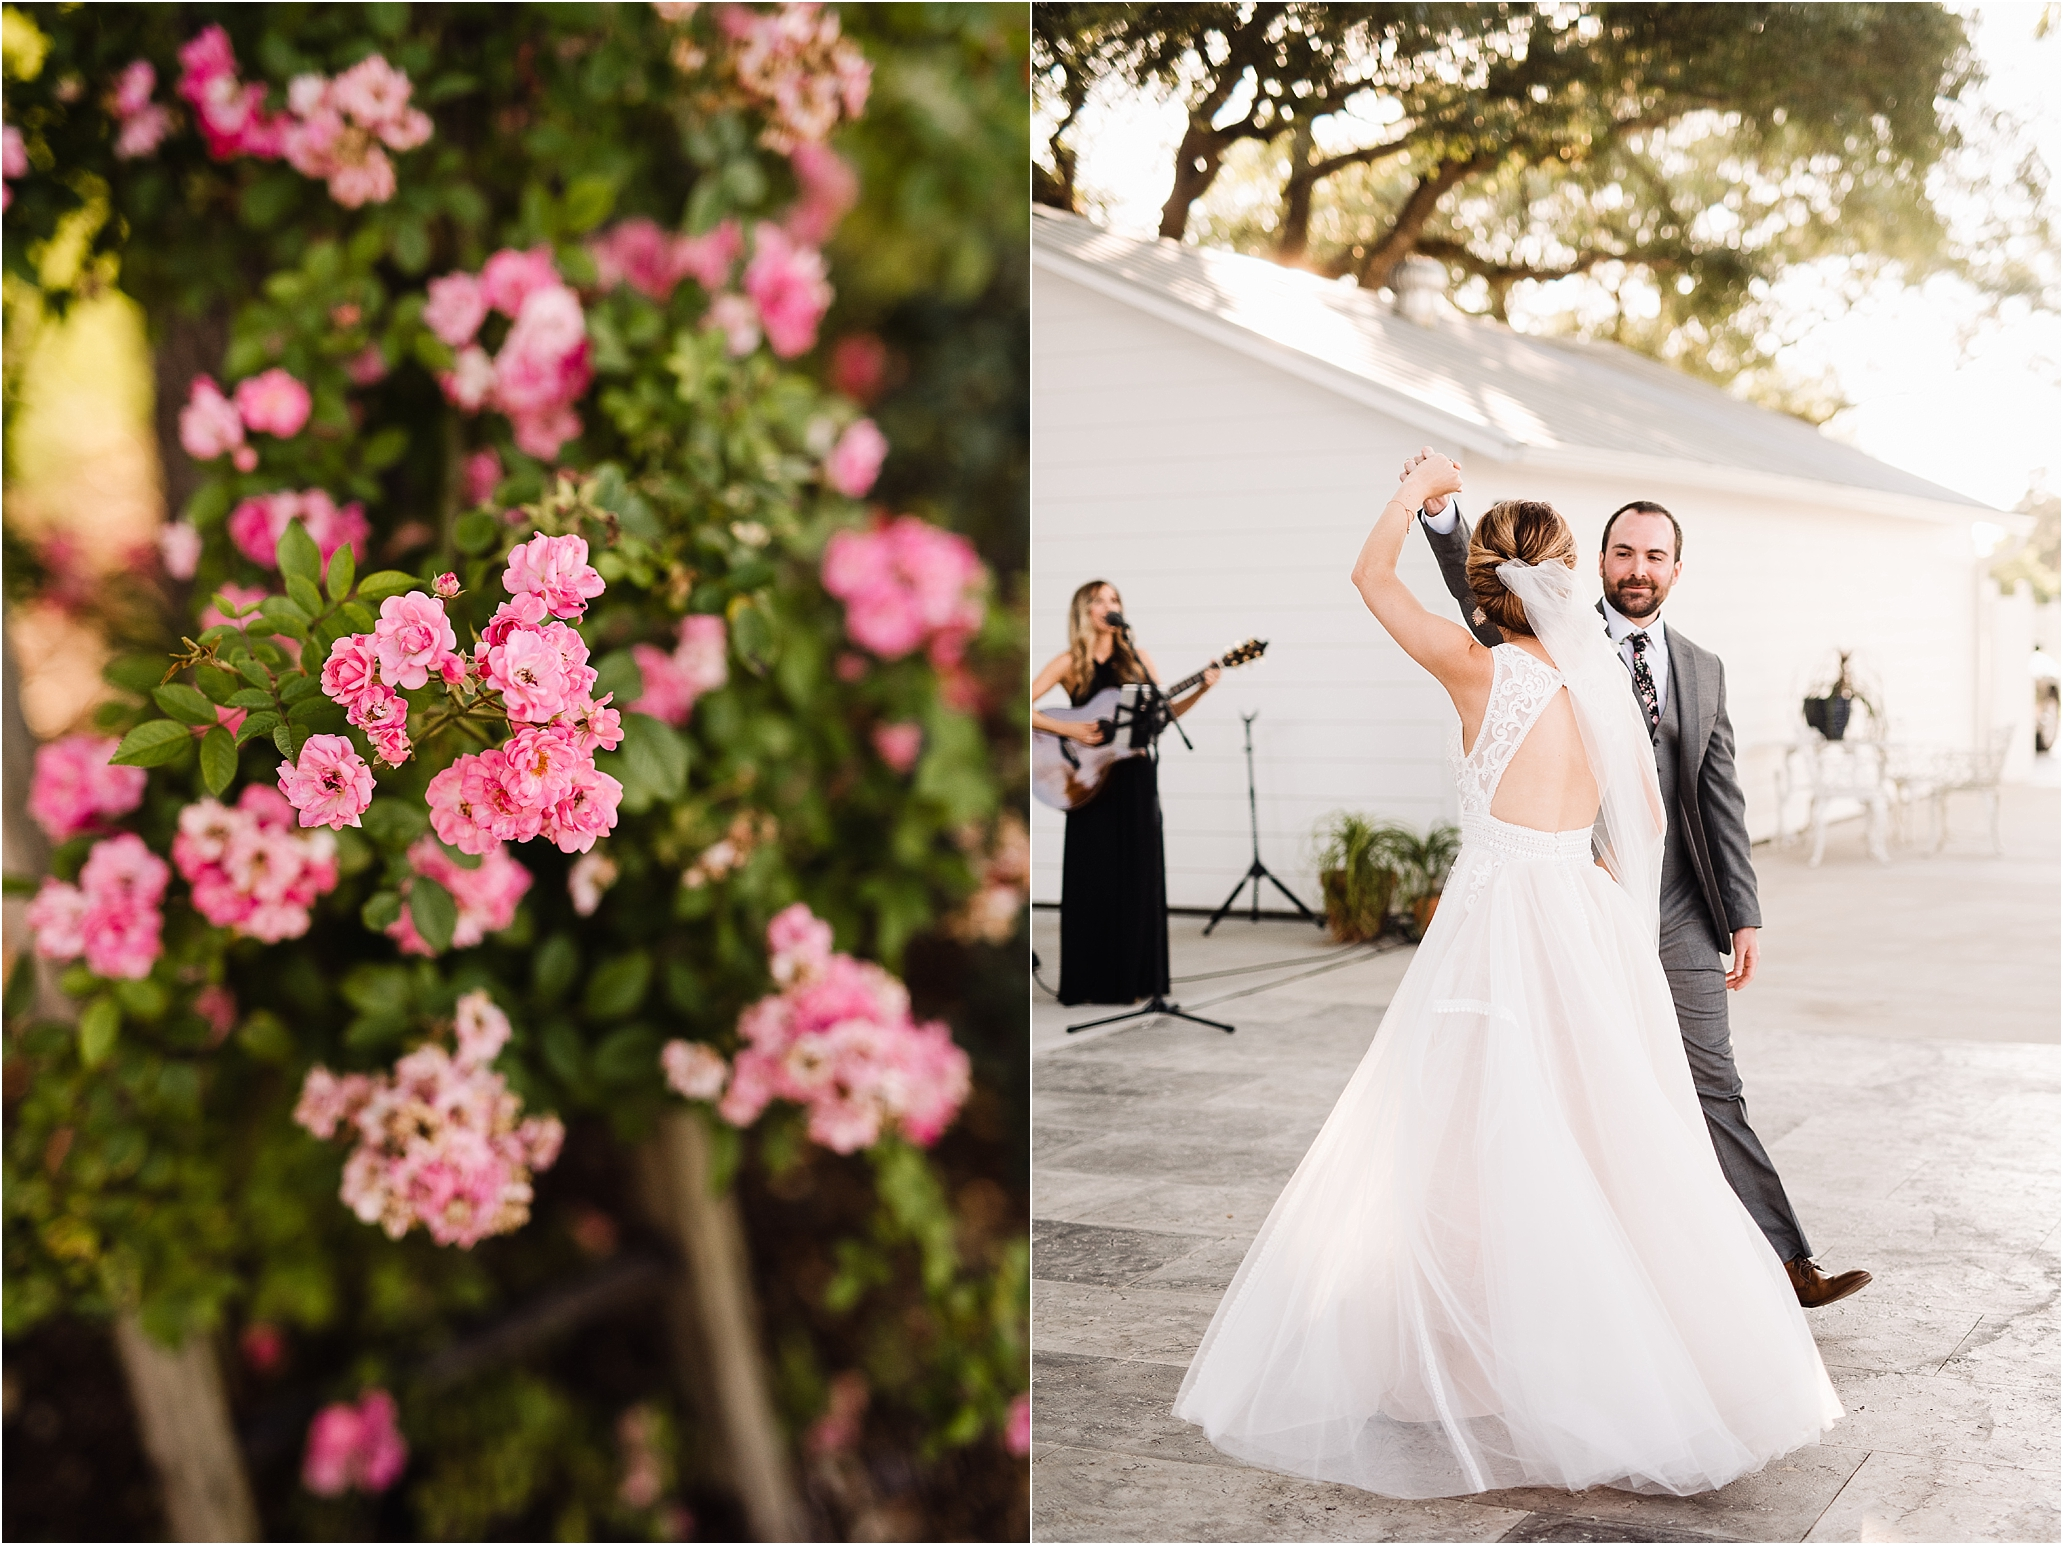 PattisonHouse_TexasWeddingPhotographer_CarlyCrockett&MattBrownWedding_0122.jpg